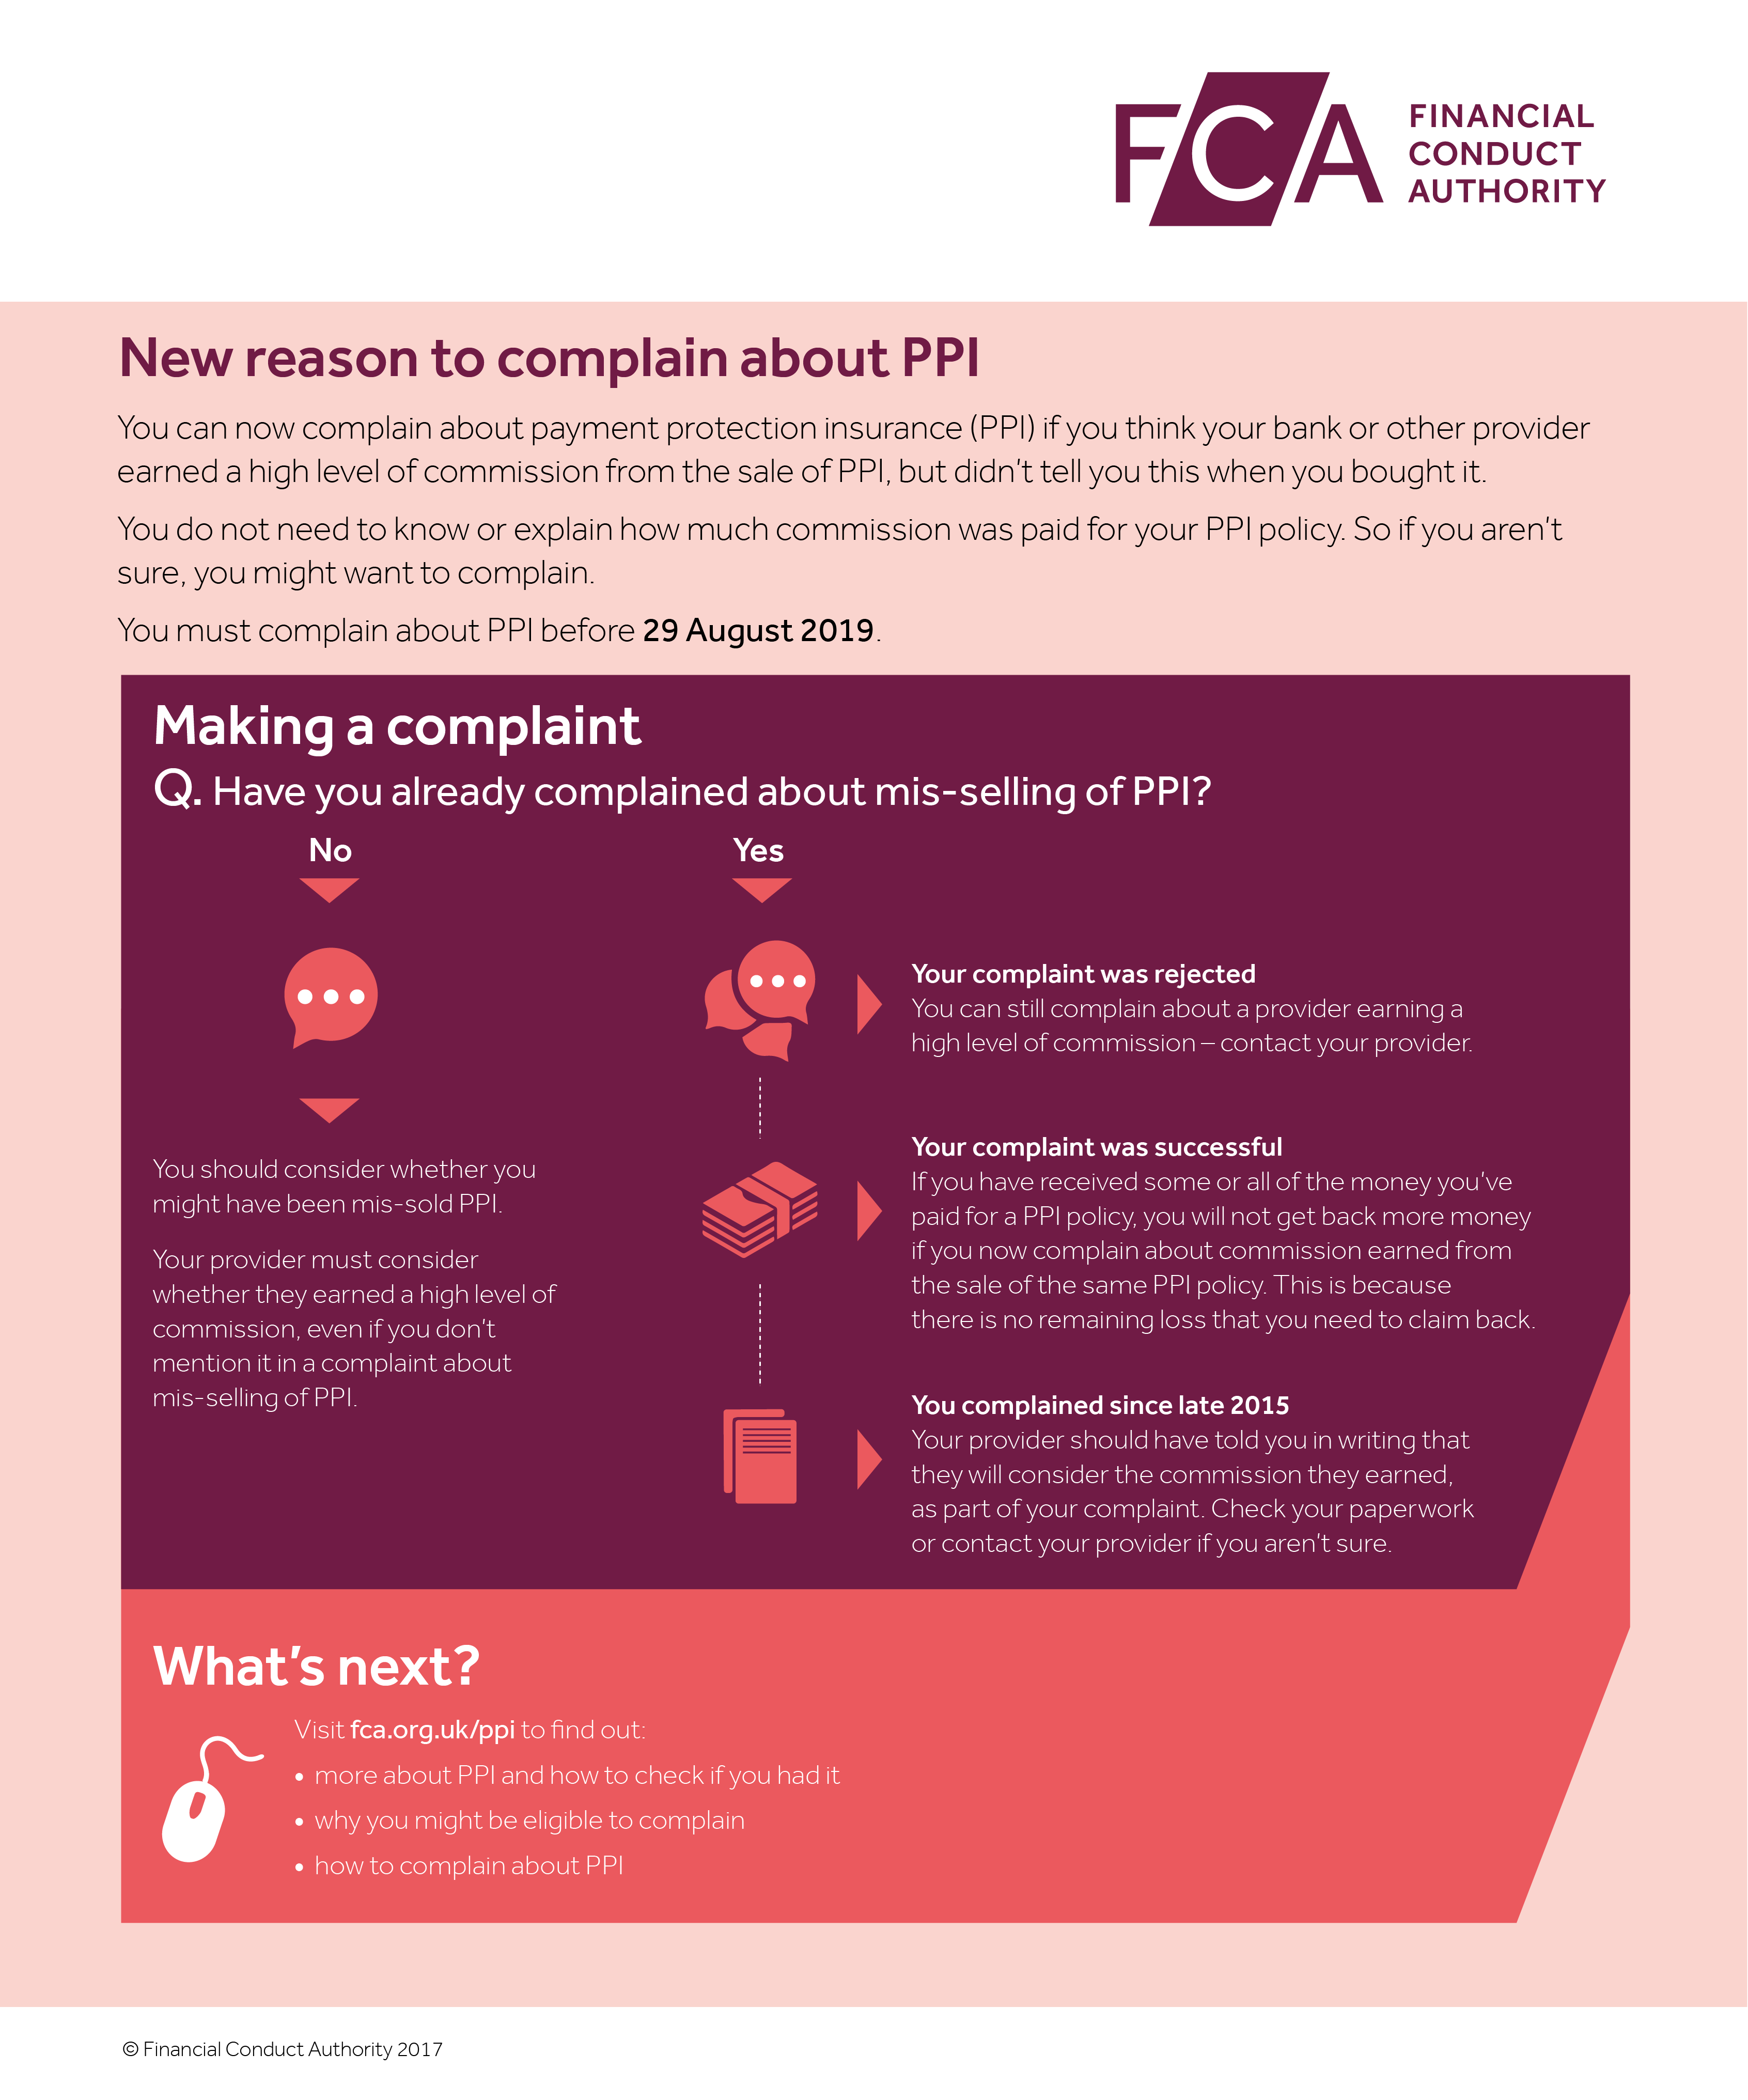 New basis for making a PPI complaint